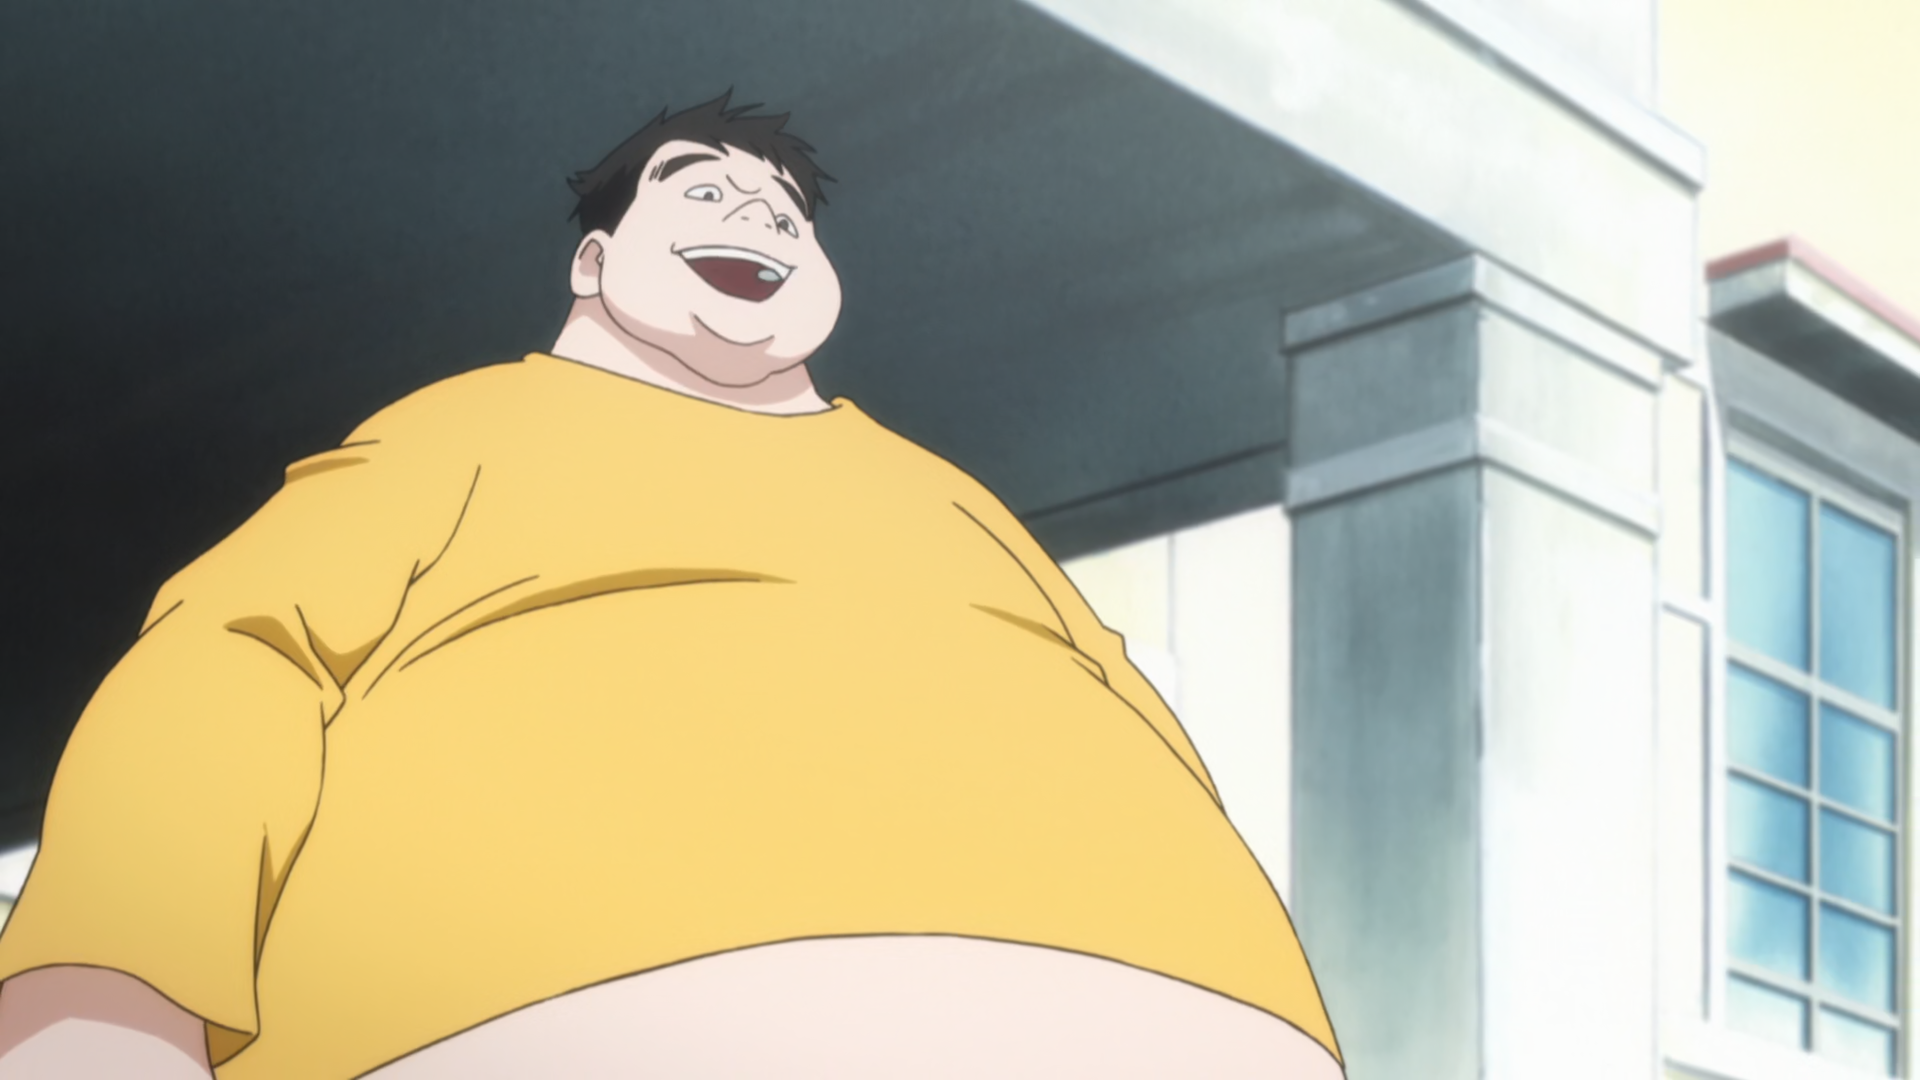 Datei:Buhara in the 2011 anime adaptation.png